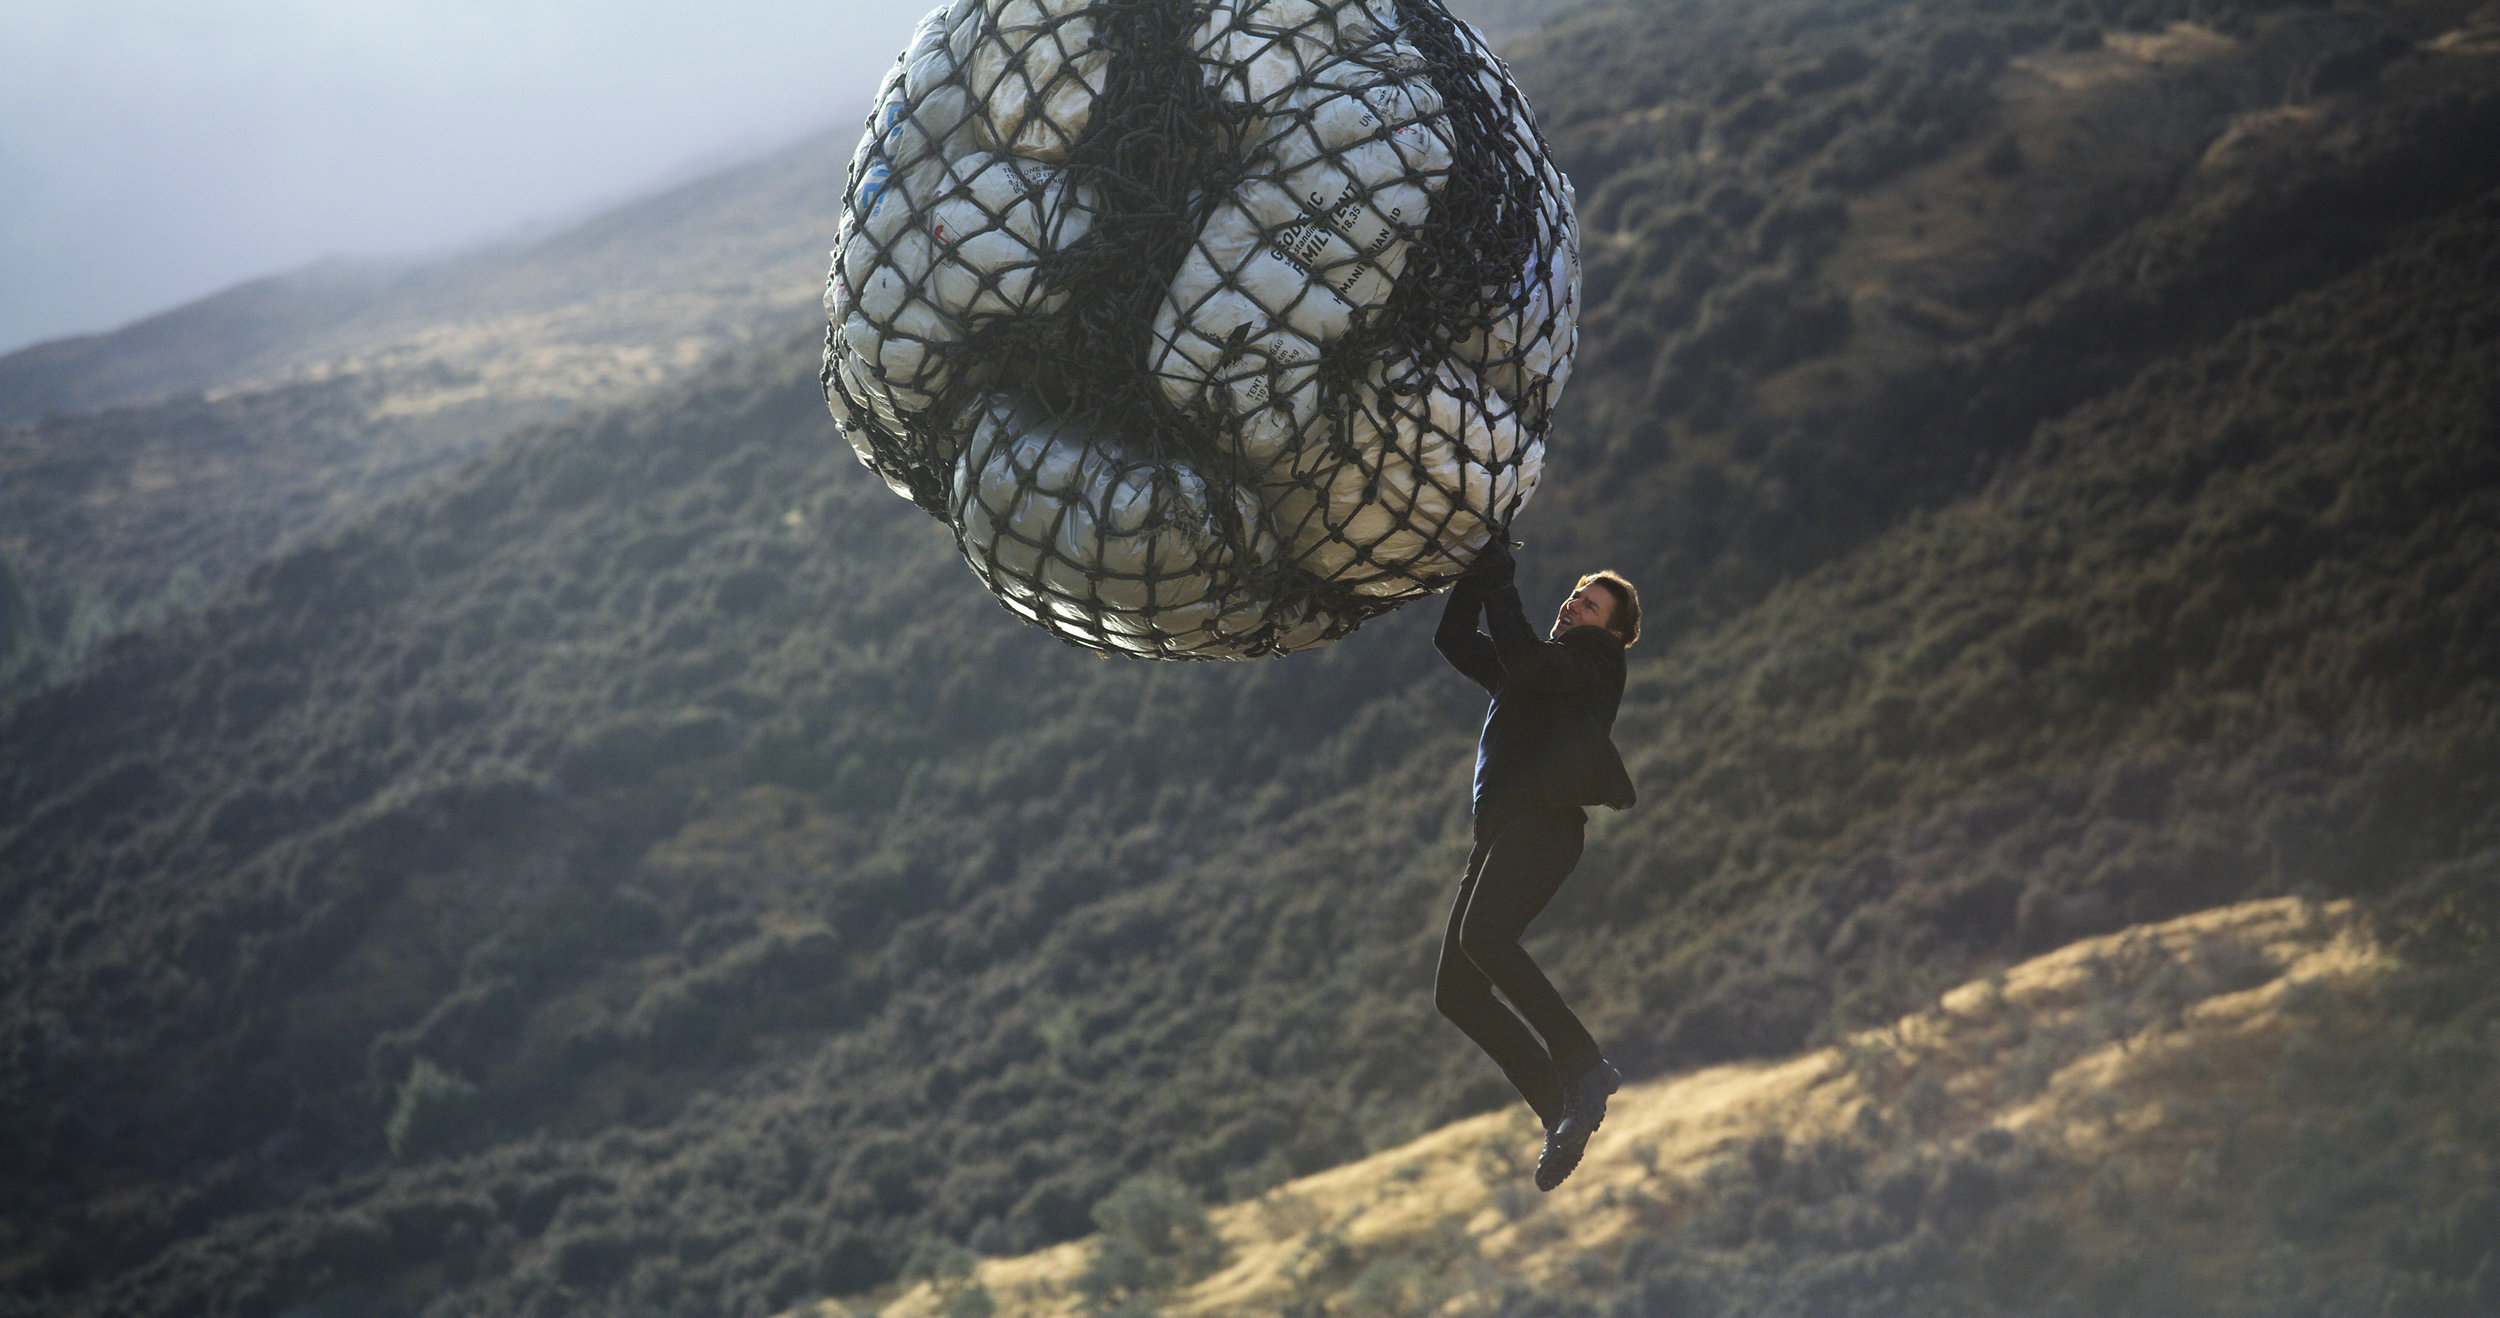 """Tom Cruise returns as superspy Ethan Hunt, riding a helicopter's payload, in """"Mission: Impossible - Fallout,"""" the sixth movie in the long-running franchise. (Photo courtesy Paramount Pictures)"""